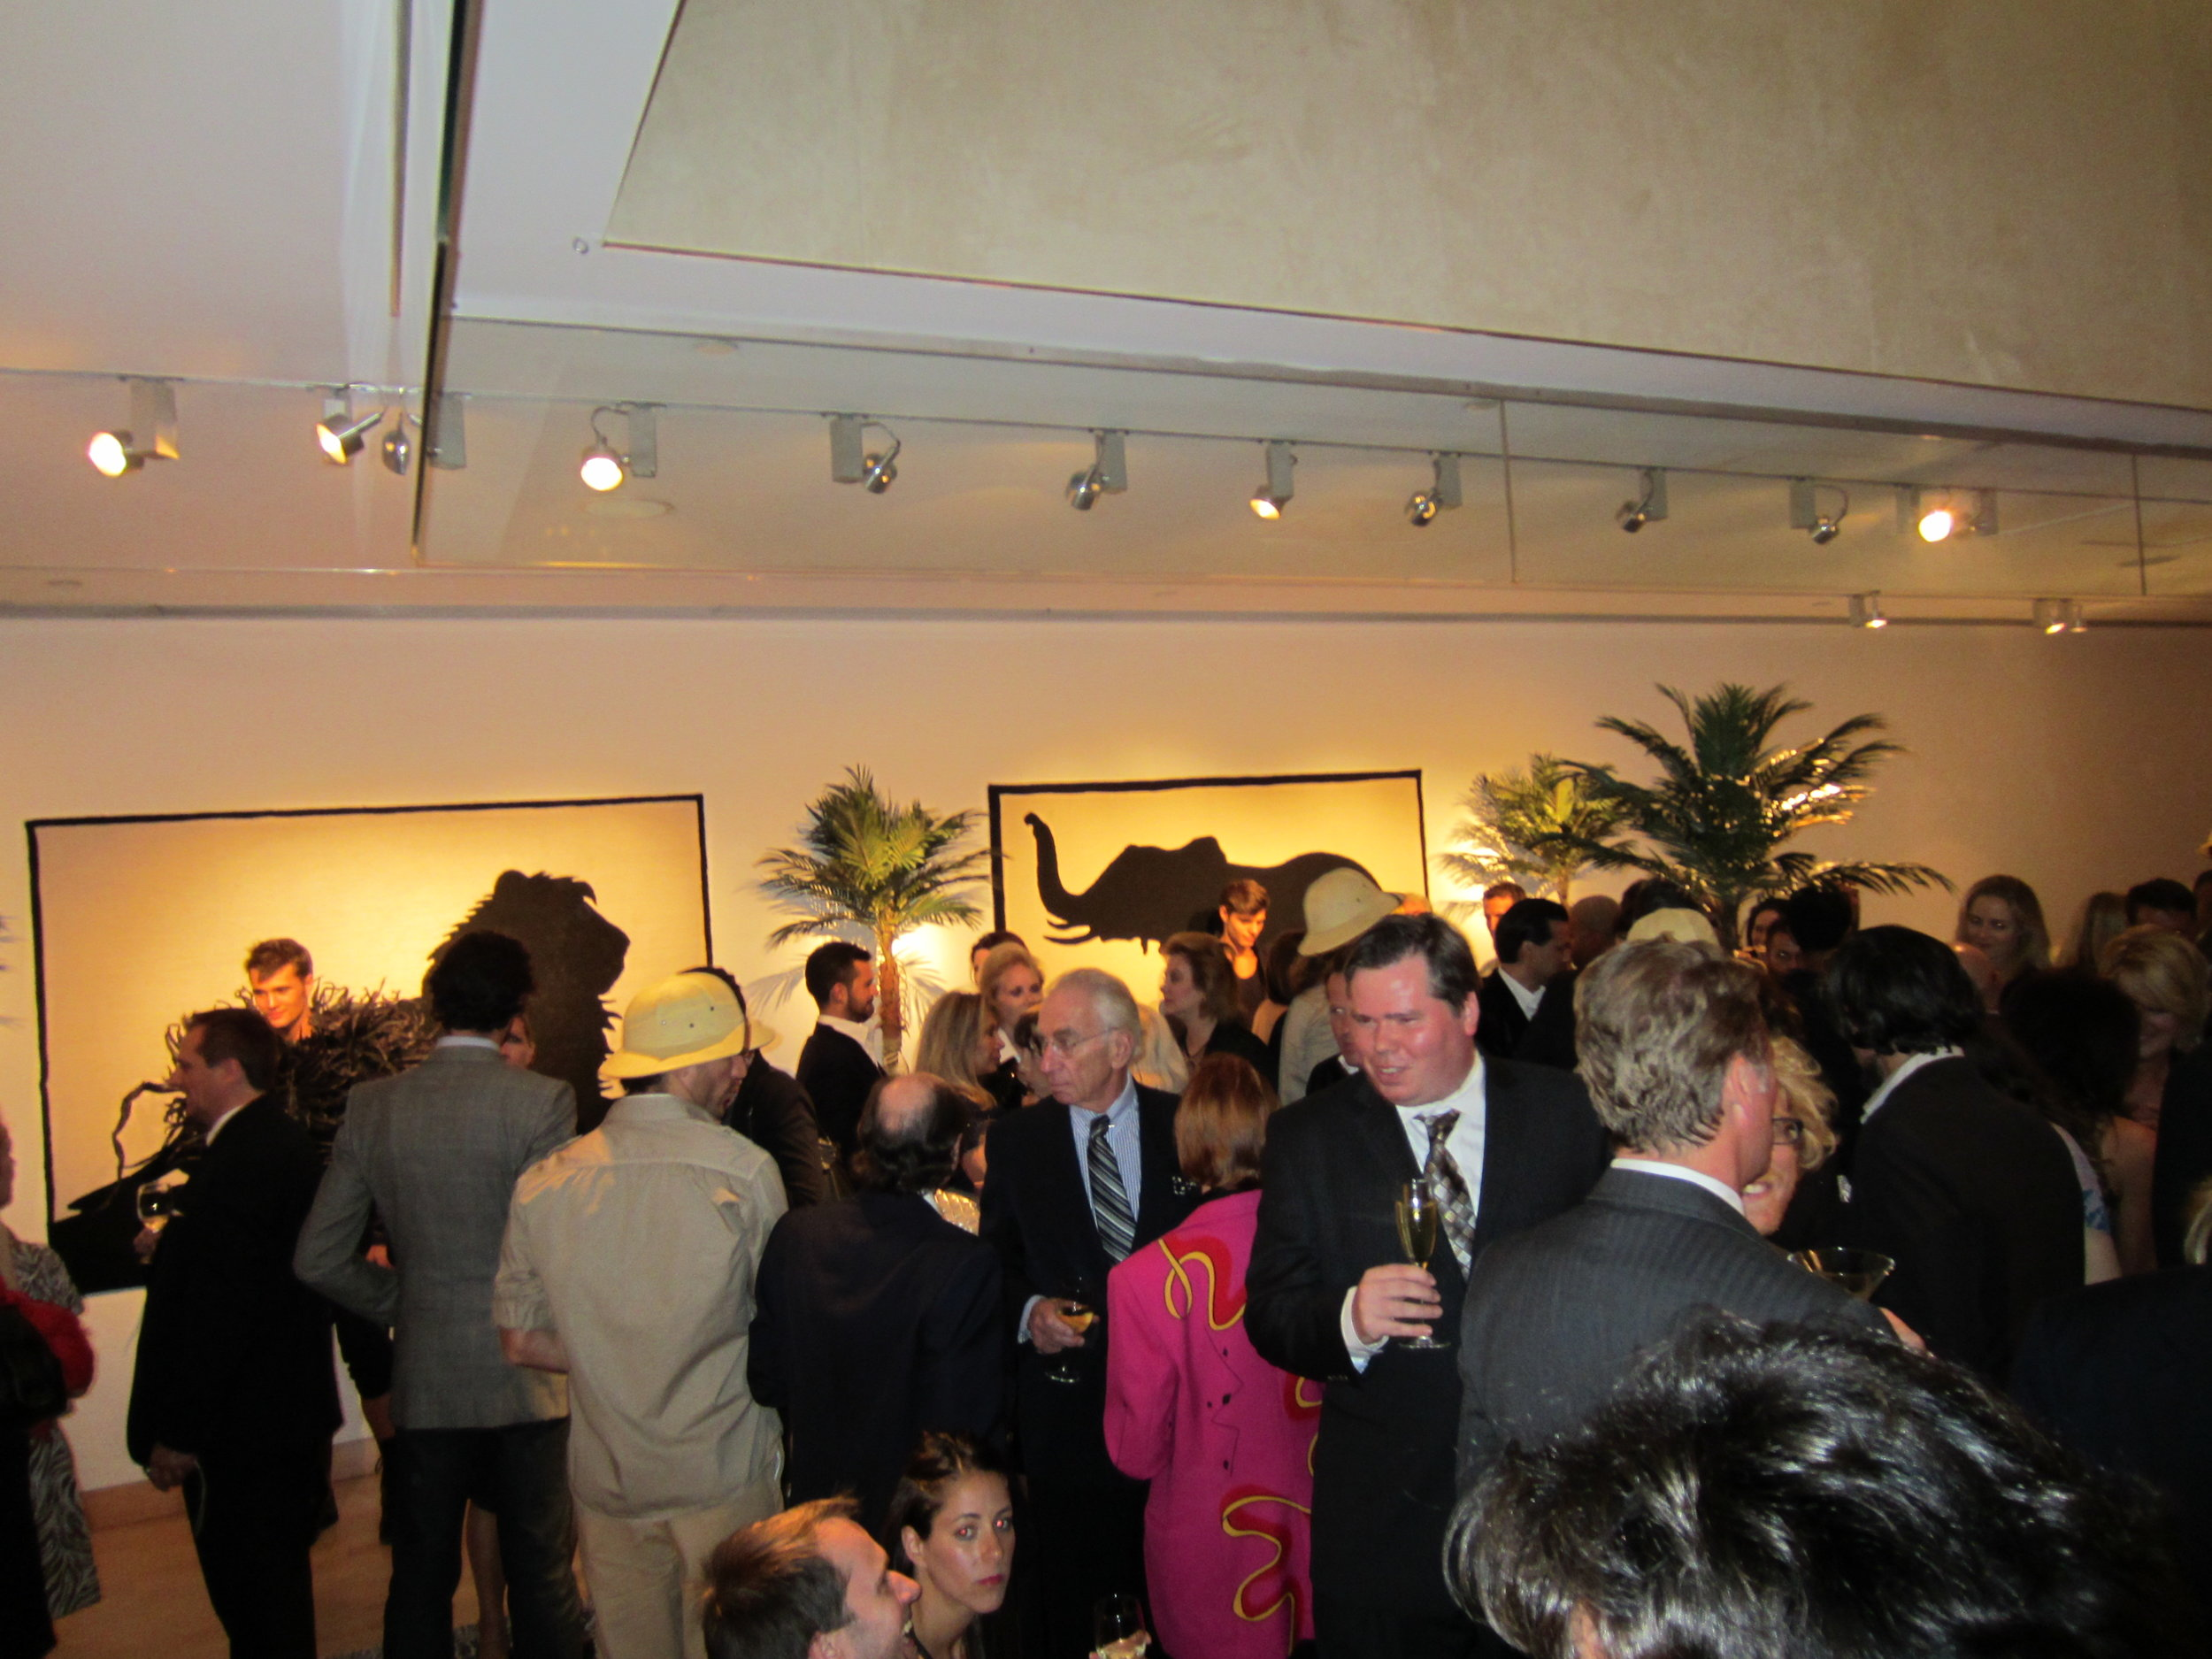 Over at steuben on madison avenue last night star interior designer geoffrey bradfield invited guests on safari and held a cocktail reception with